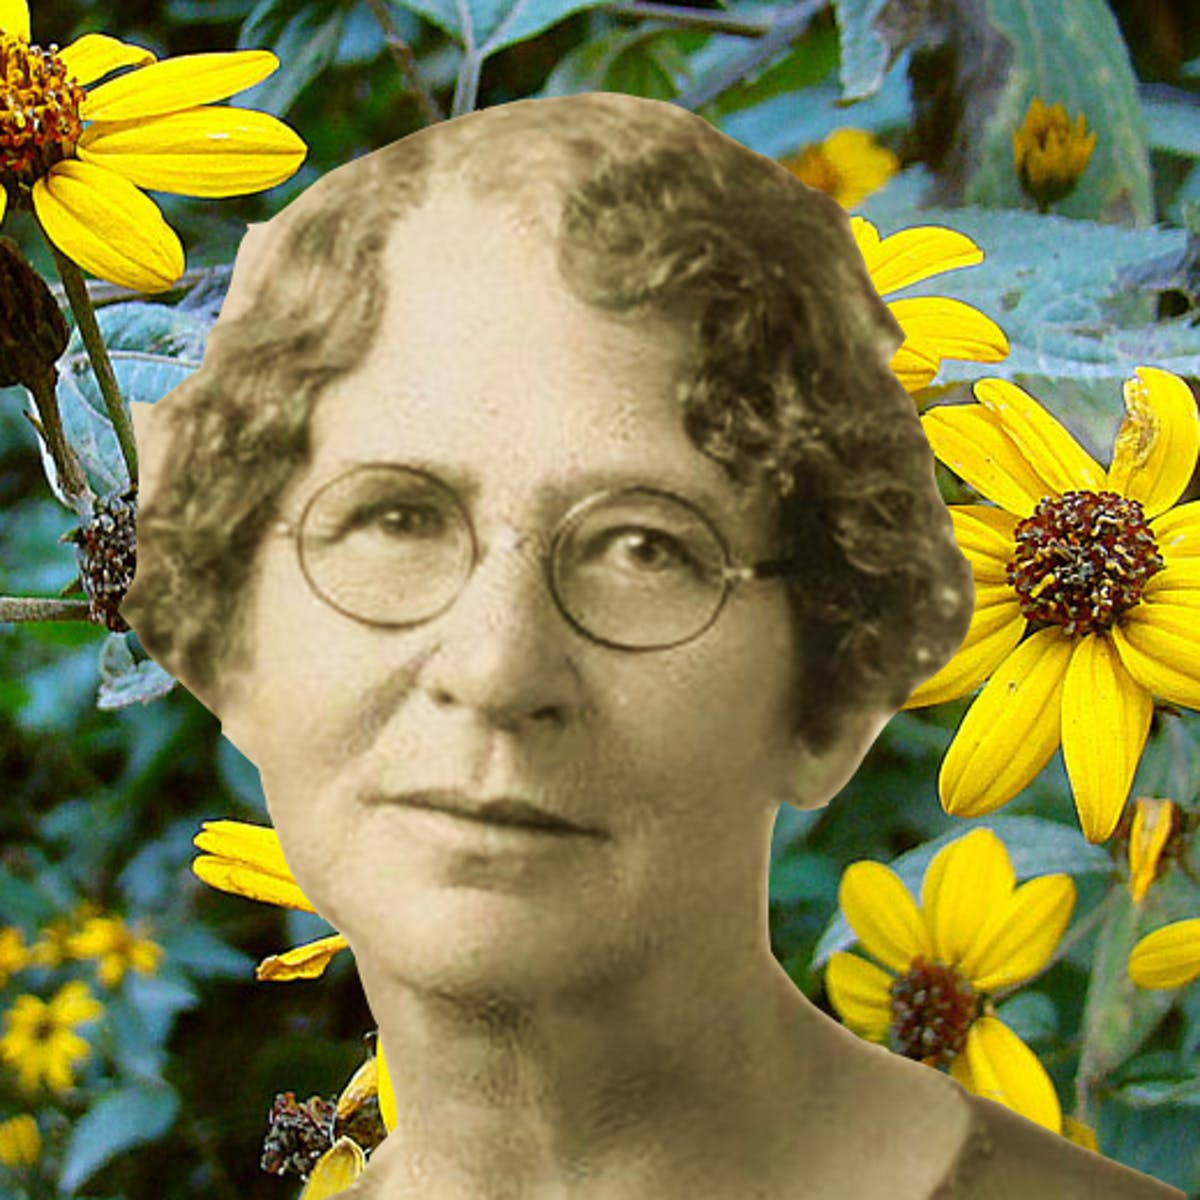 Ynés Mexía: Pioneering Botanist, Late Bloomer, Discovered This Flower